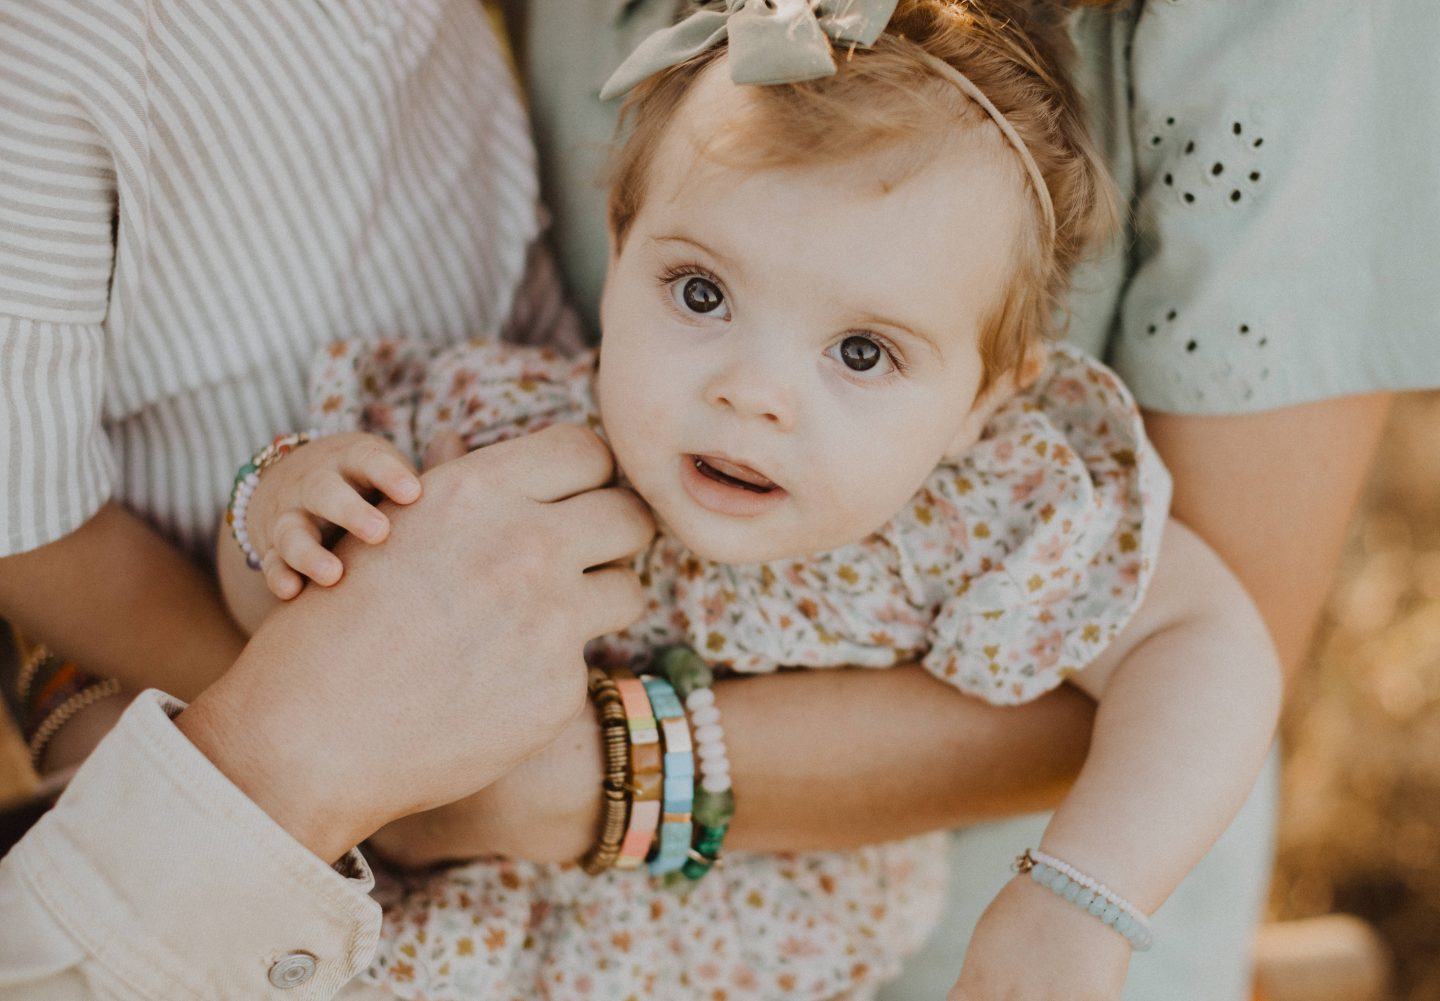 Life Update by popular lifestyle blog, Navy Grace: image of a baby girl wearing white mary jane shoes, a mint green bow head band, and a floral print dress and being held by her parents.